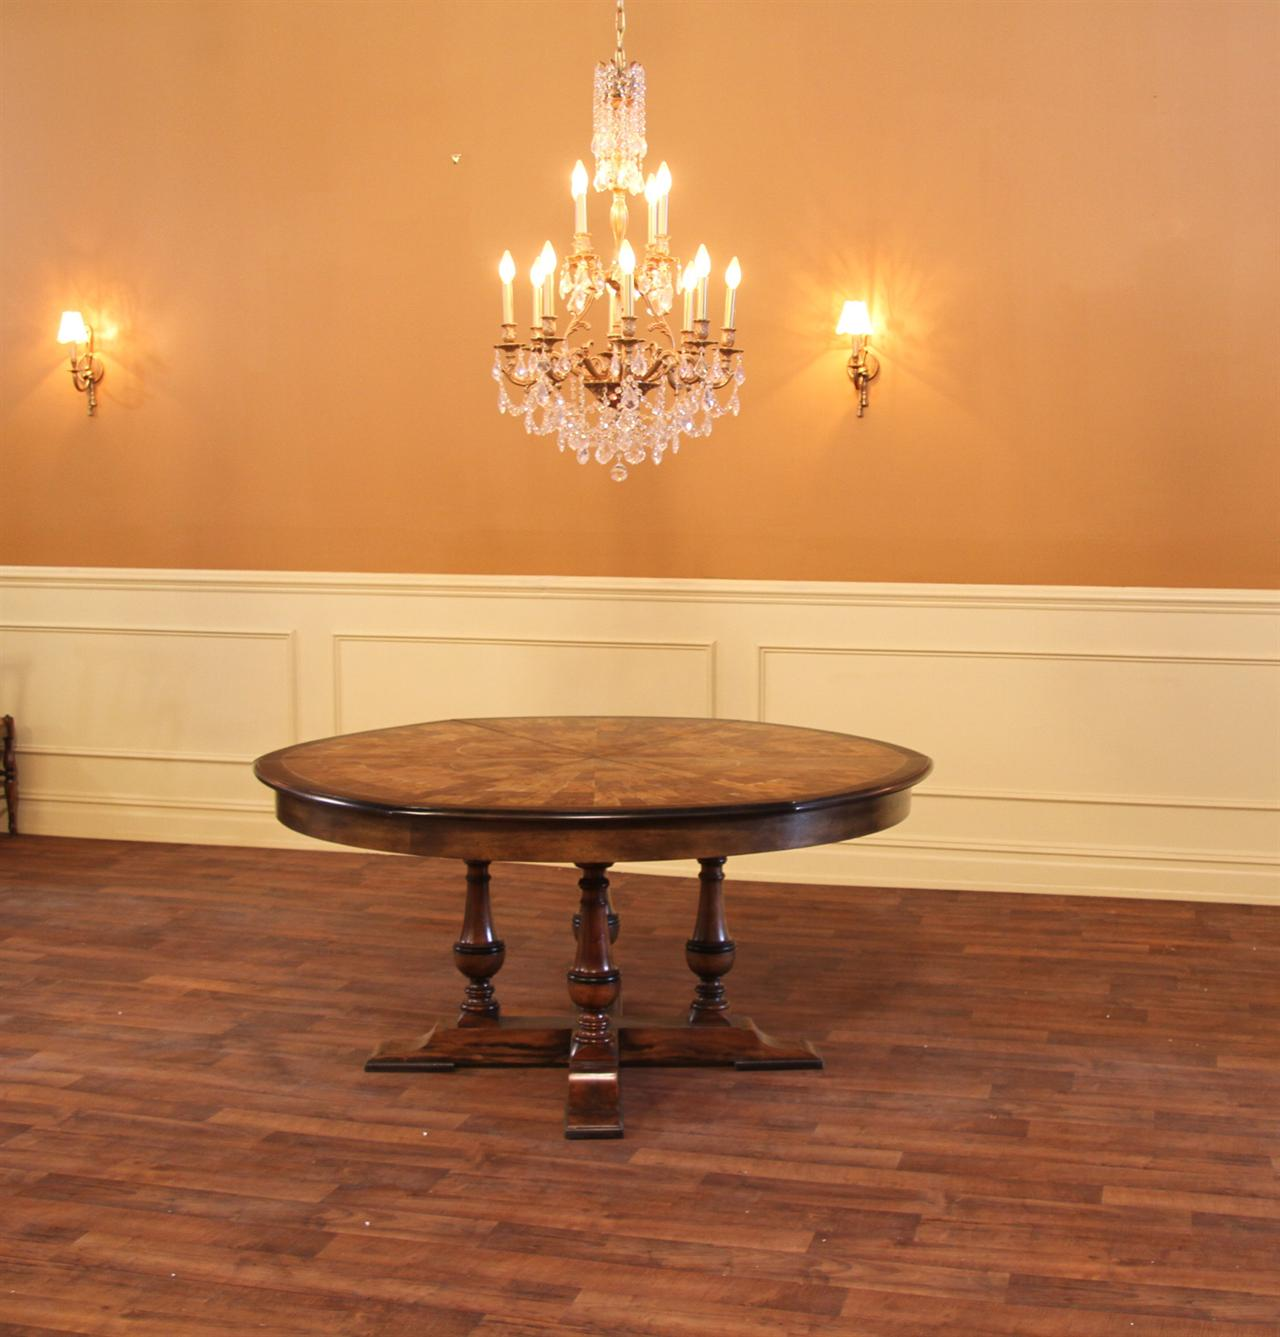 Dining Room Tables With Leaves: Large Round To Round Dining Jupe Table